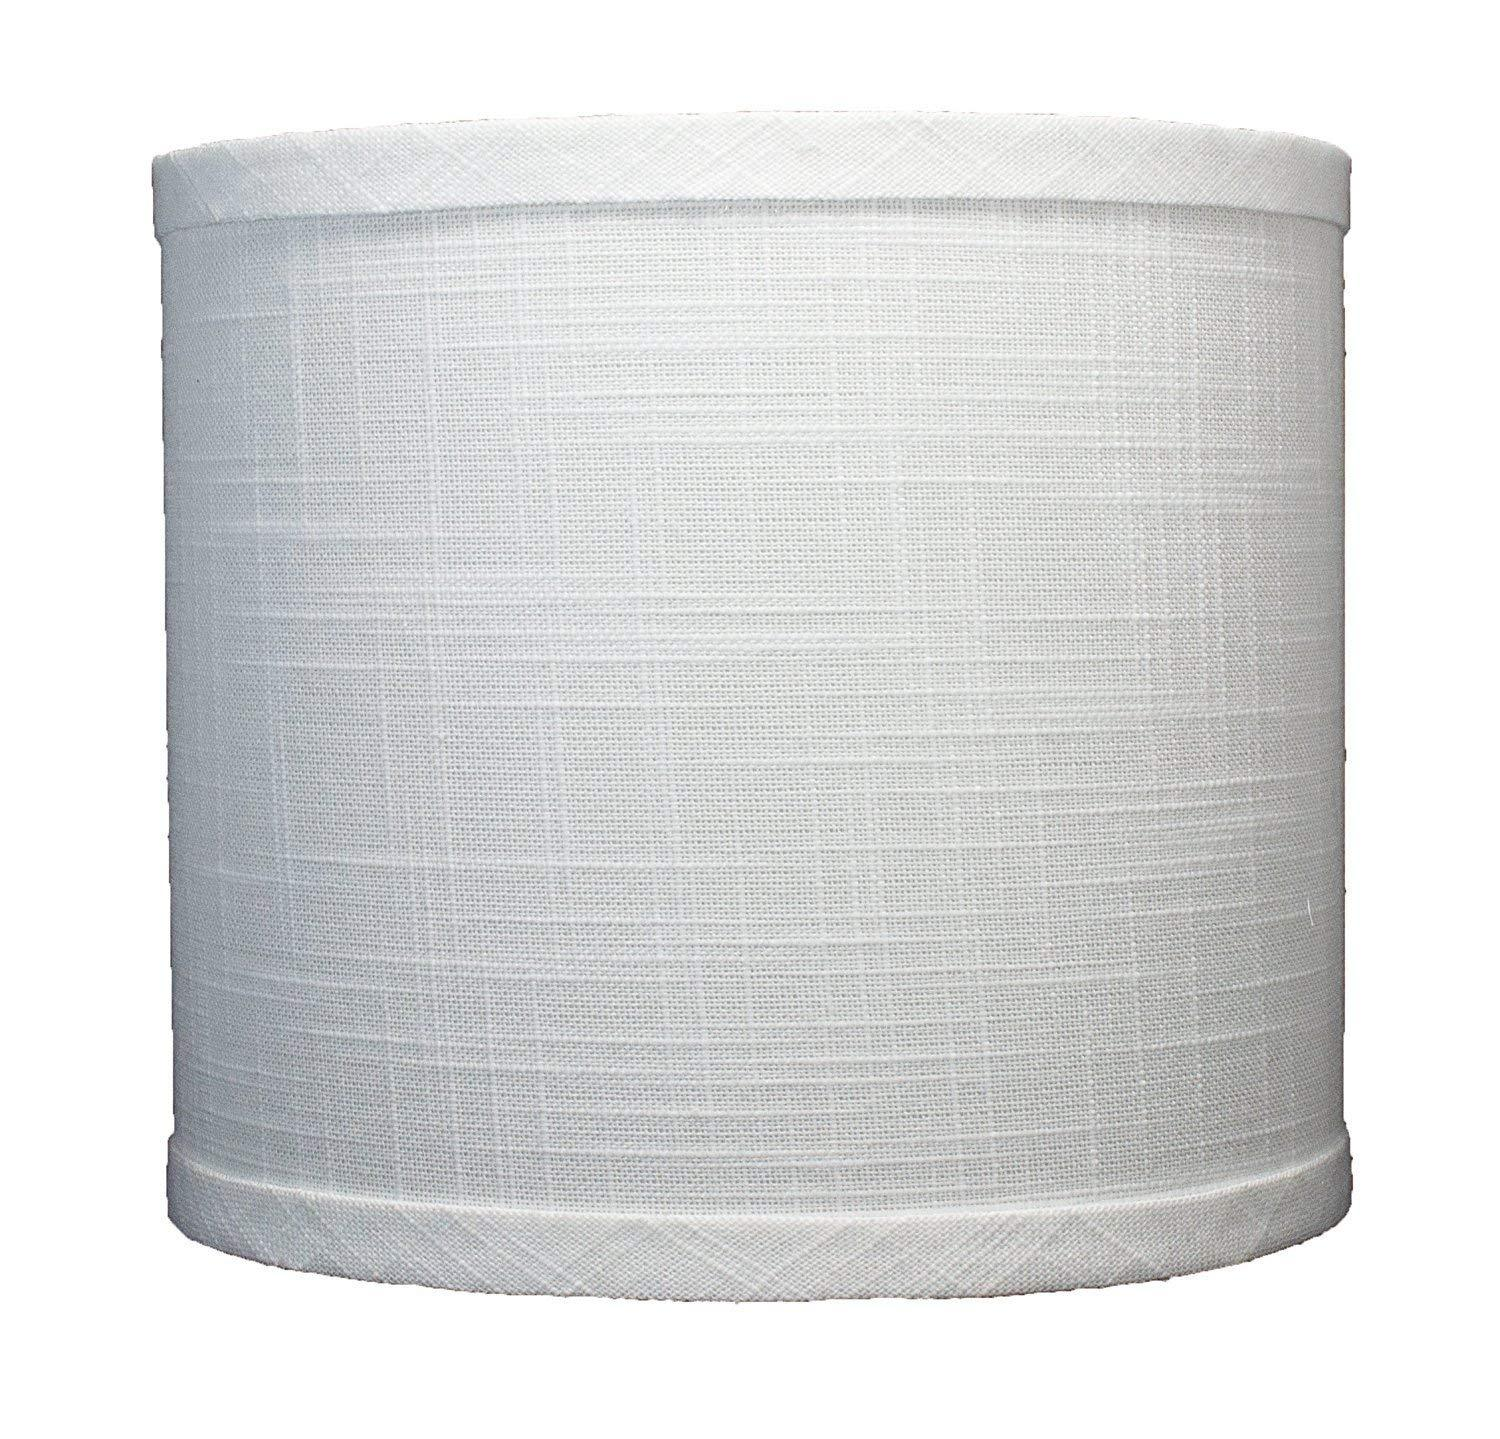 Urbanest Linen Drum Lamp Shade 8 Inch By 8 Inch By 7 Inch